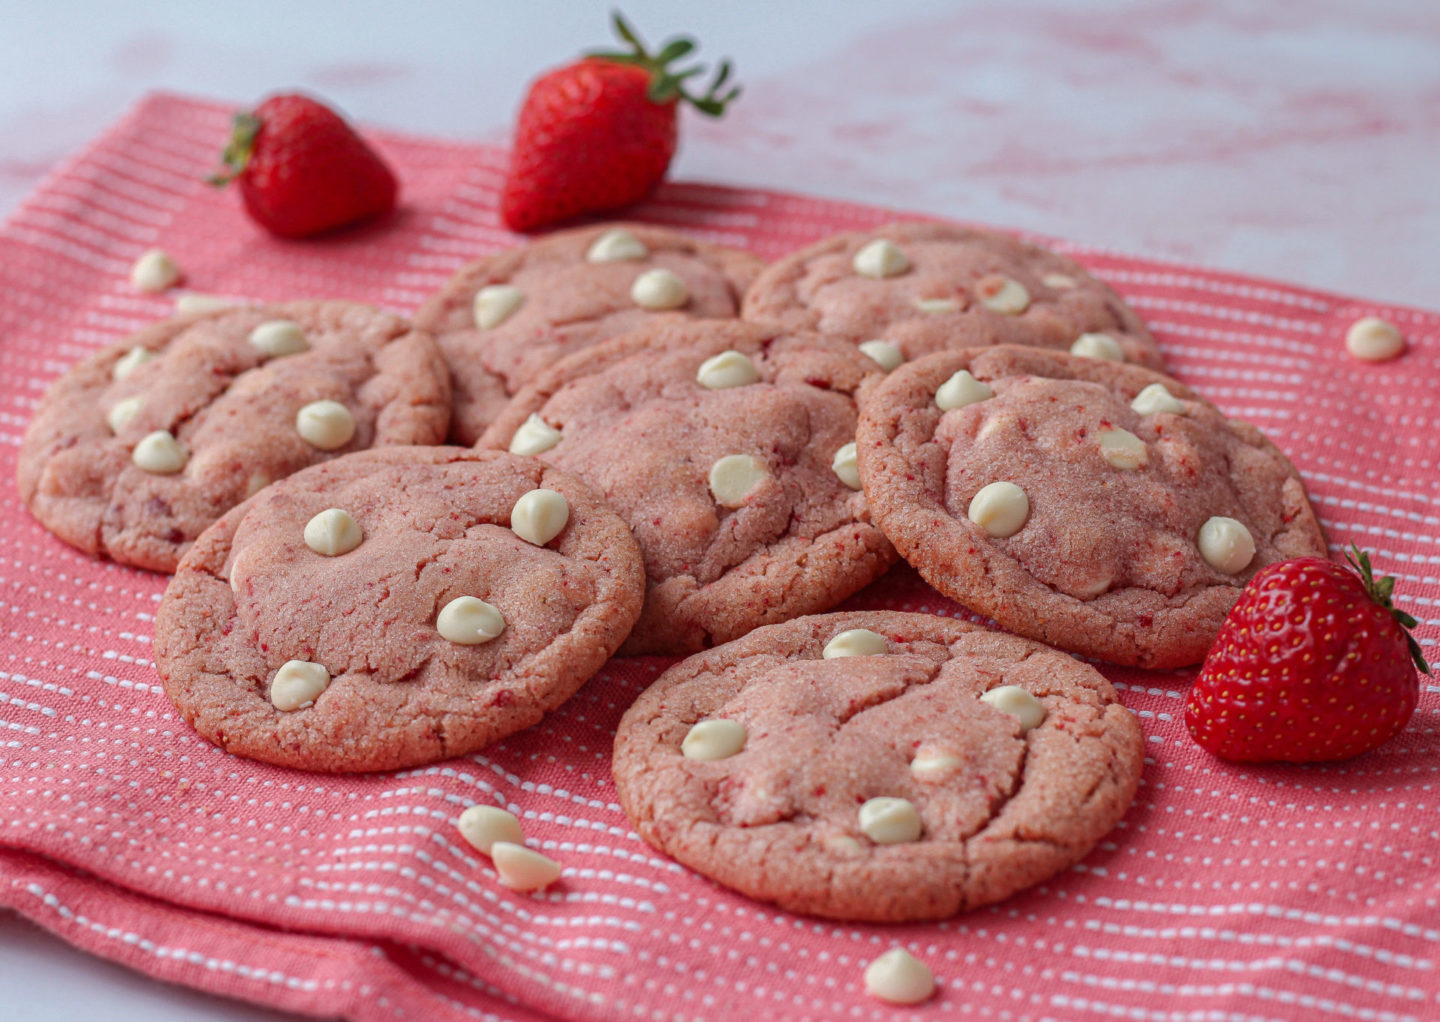 Several strawberry white chocolate cookies on a pink tea towel